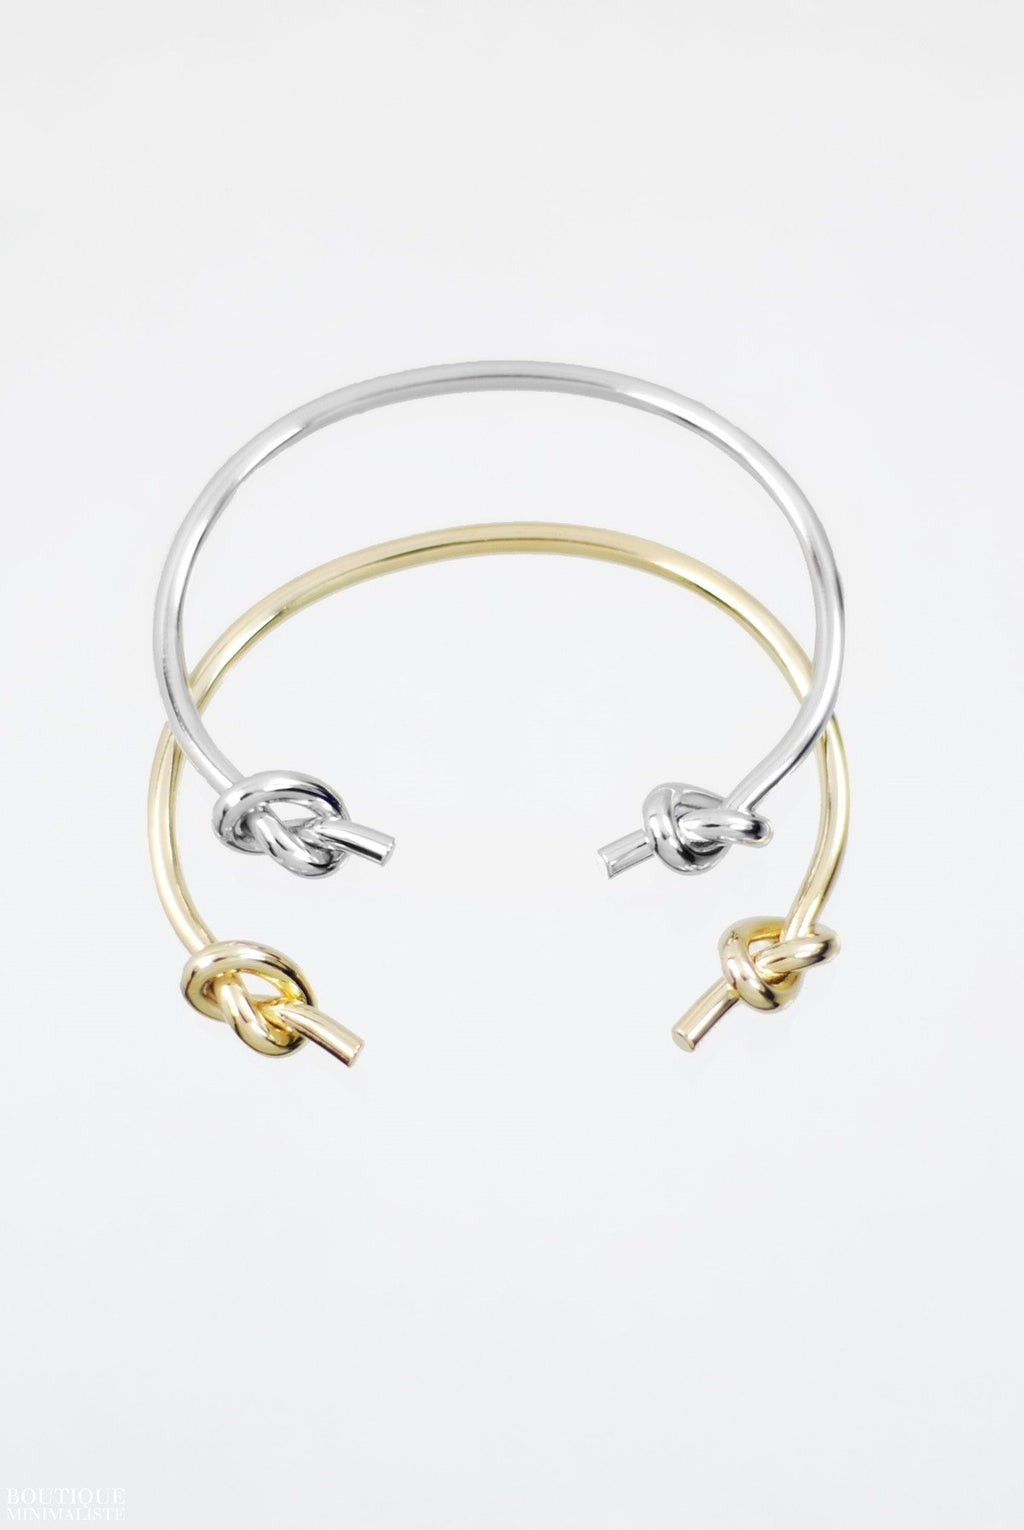 Double knot cuff - Boutique Minimaliste